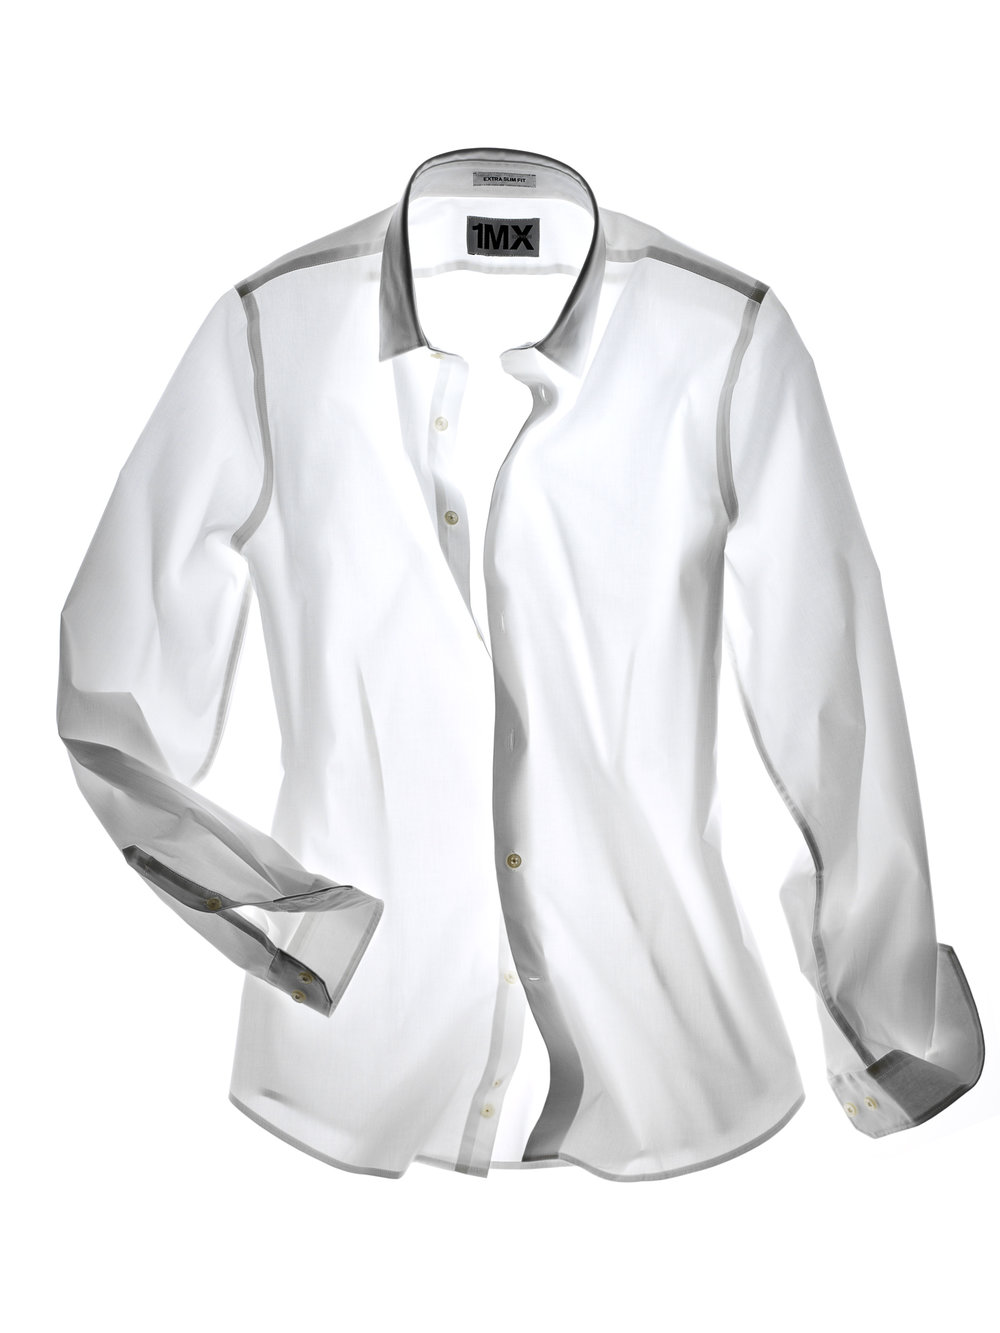 express_shirt_205_RS.jpg